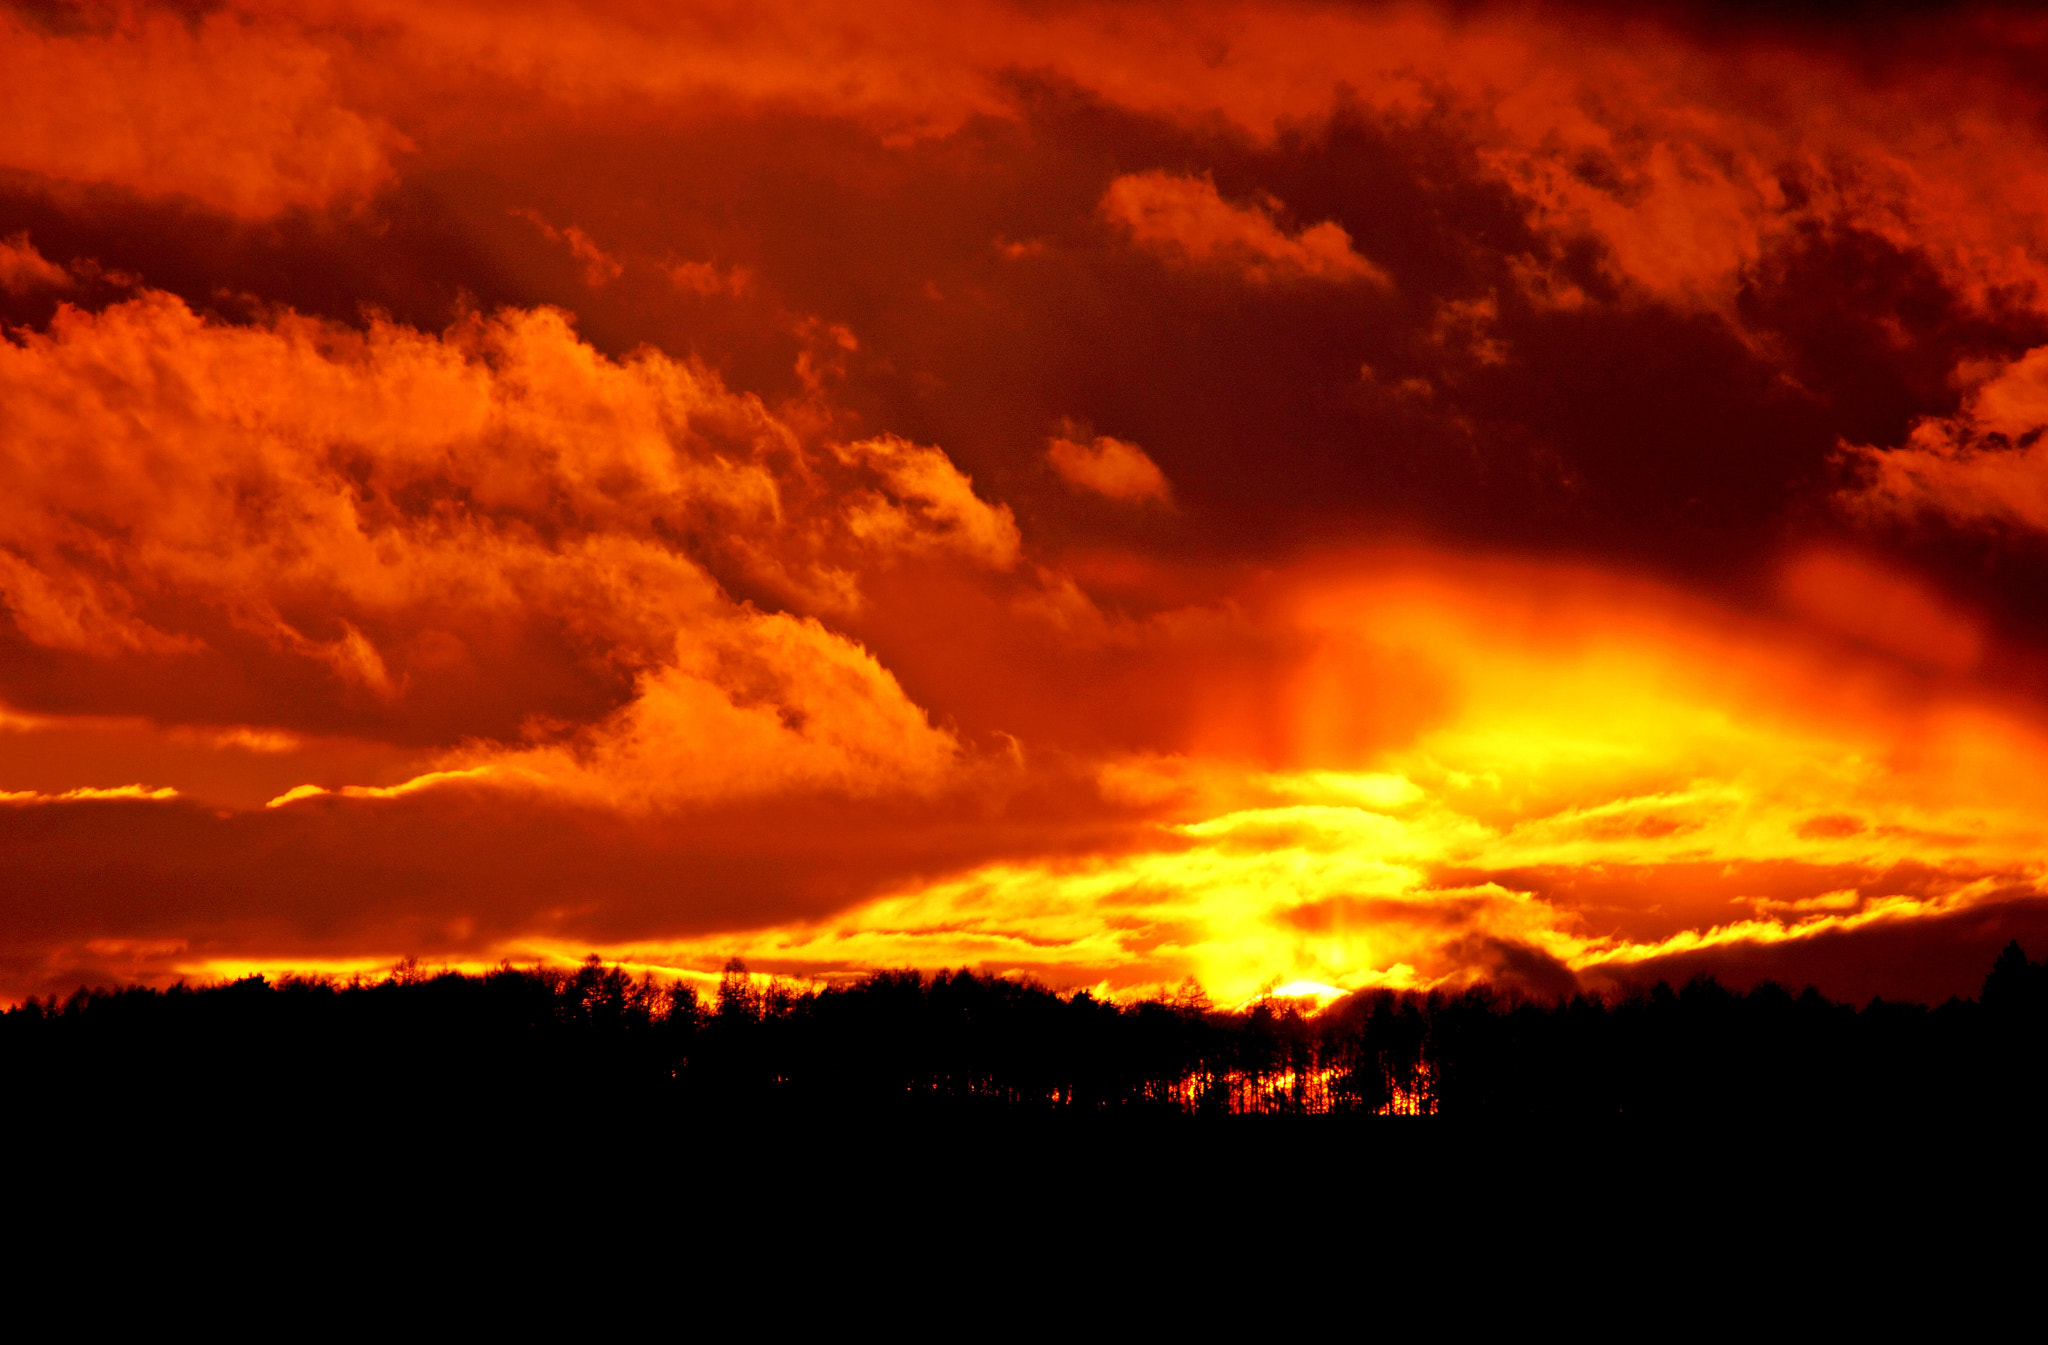 Photograph FIRE by Tom M. on 500px